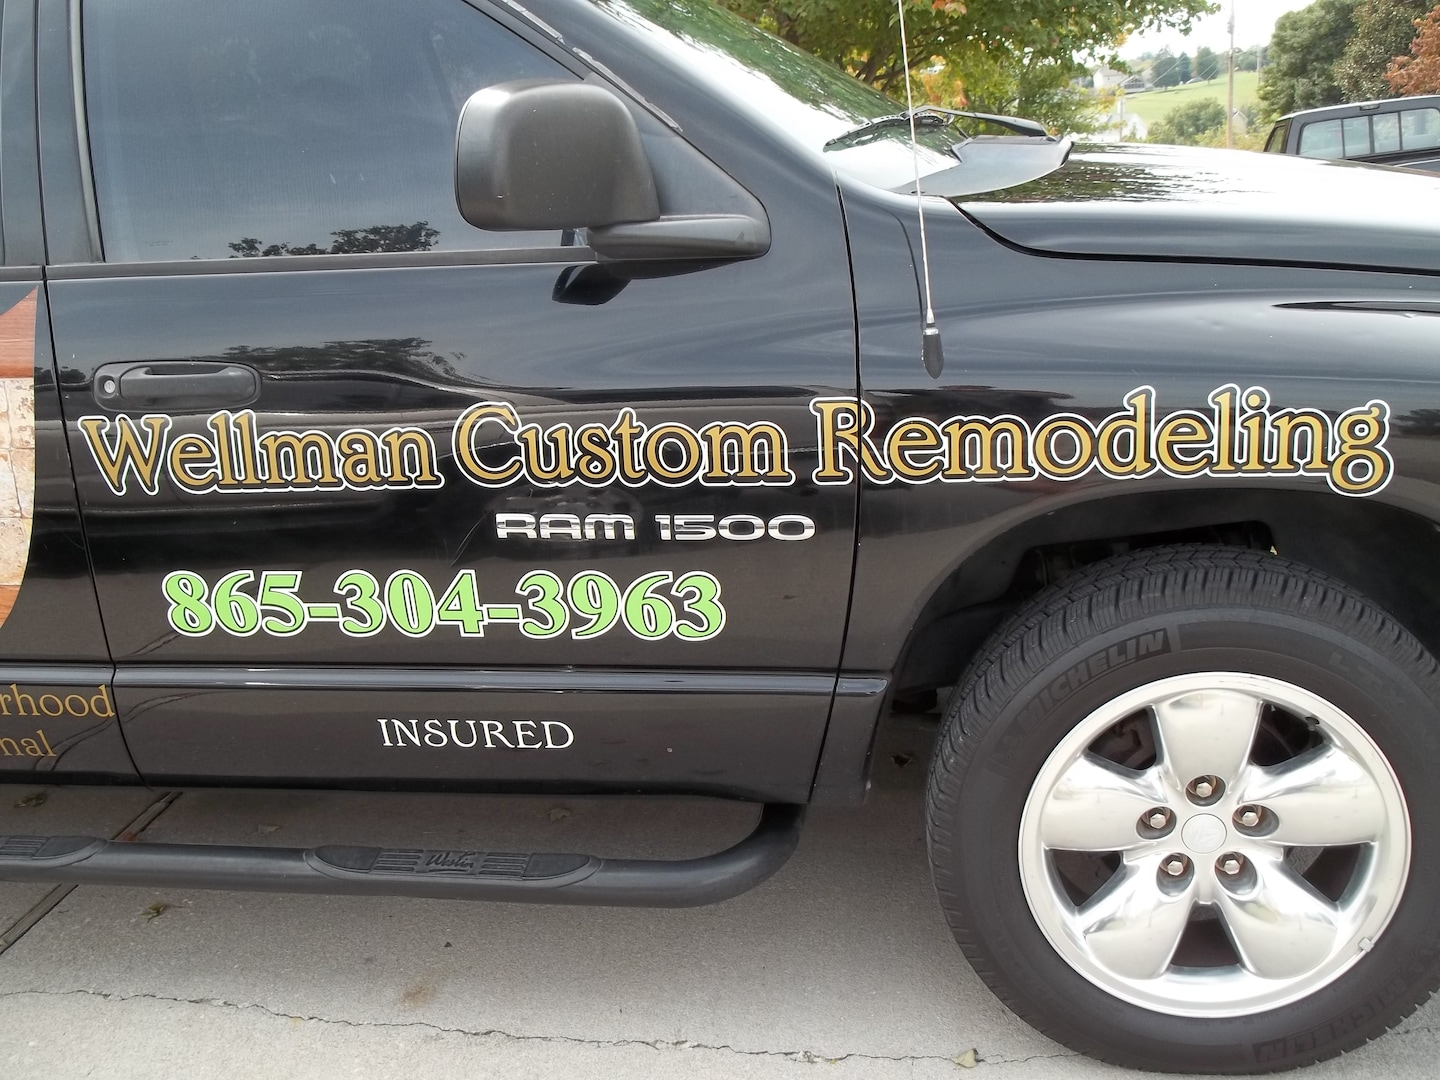 Wellman Custom Remodeling